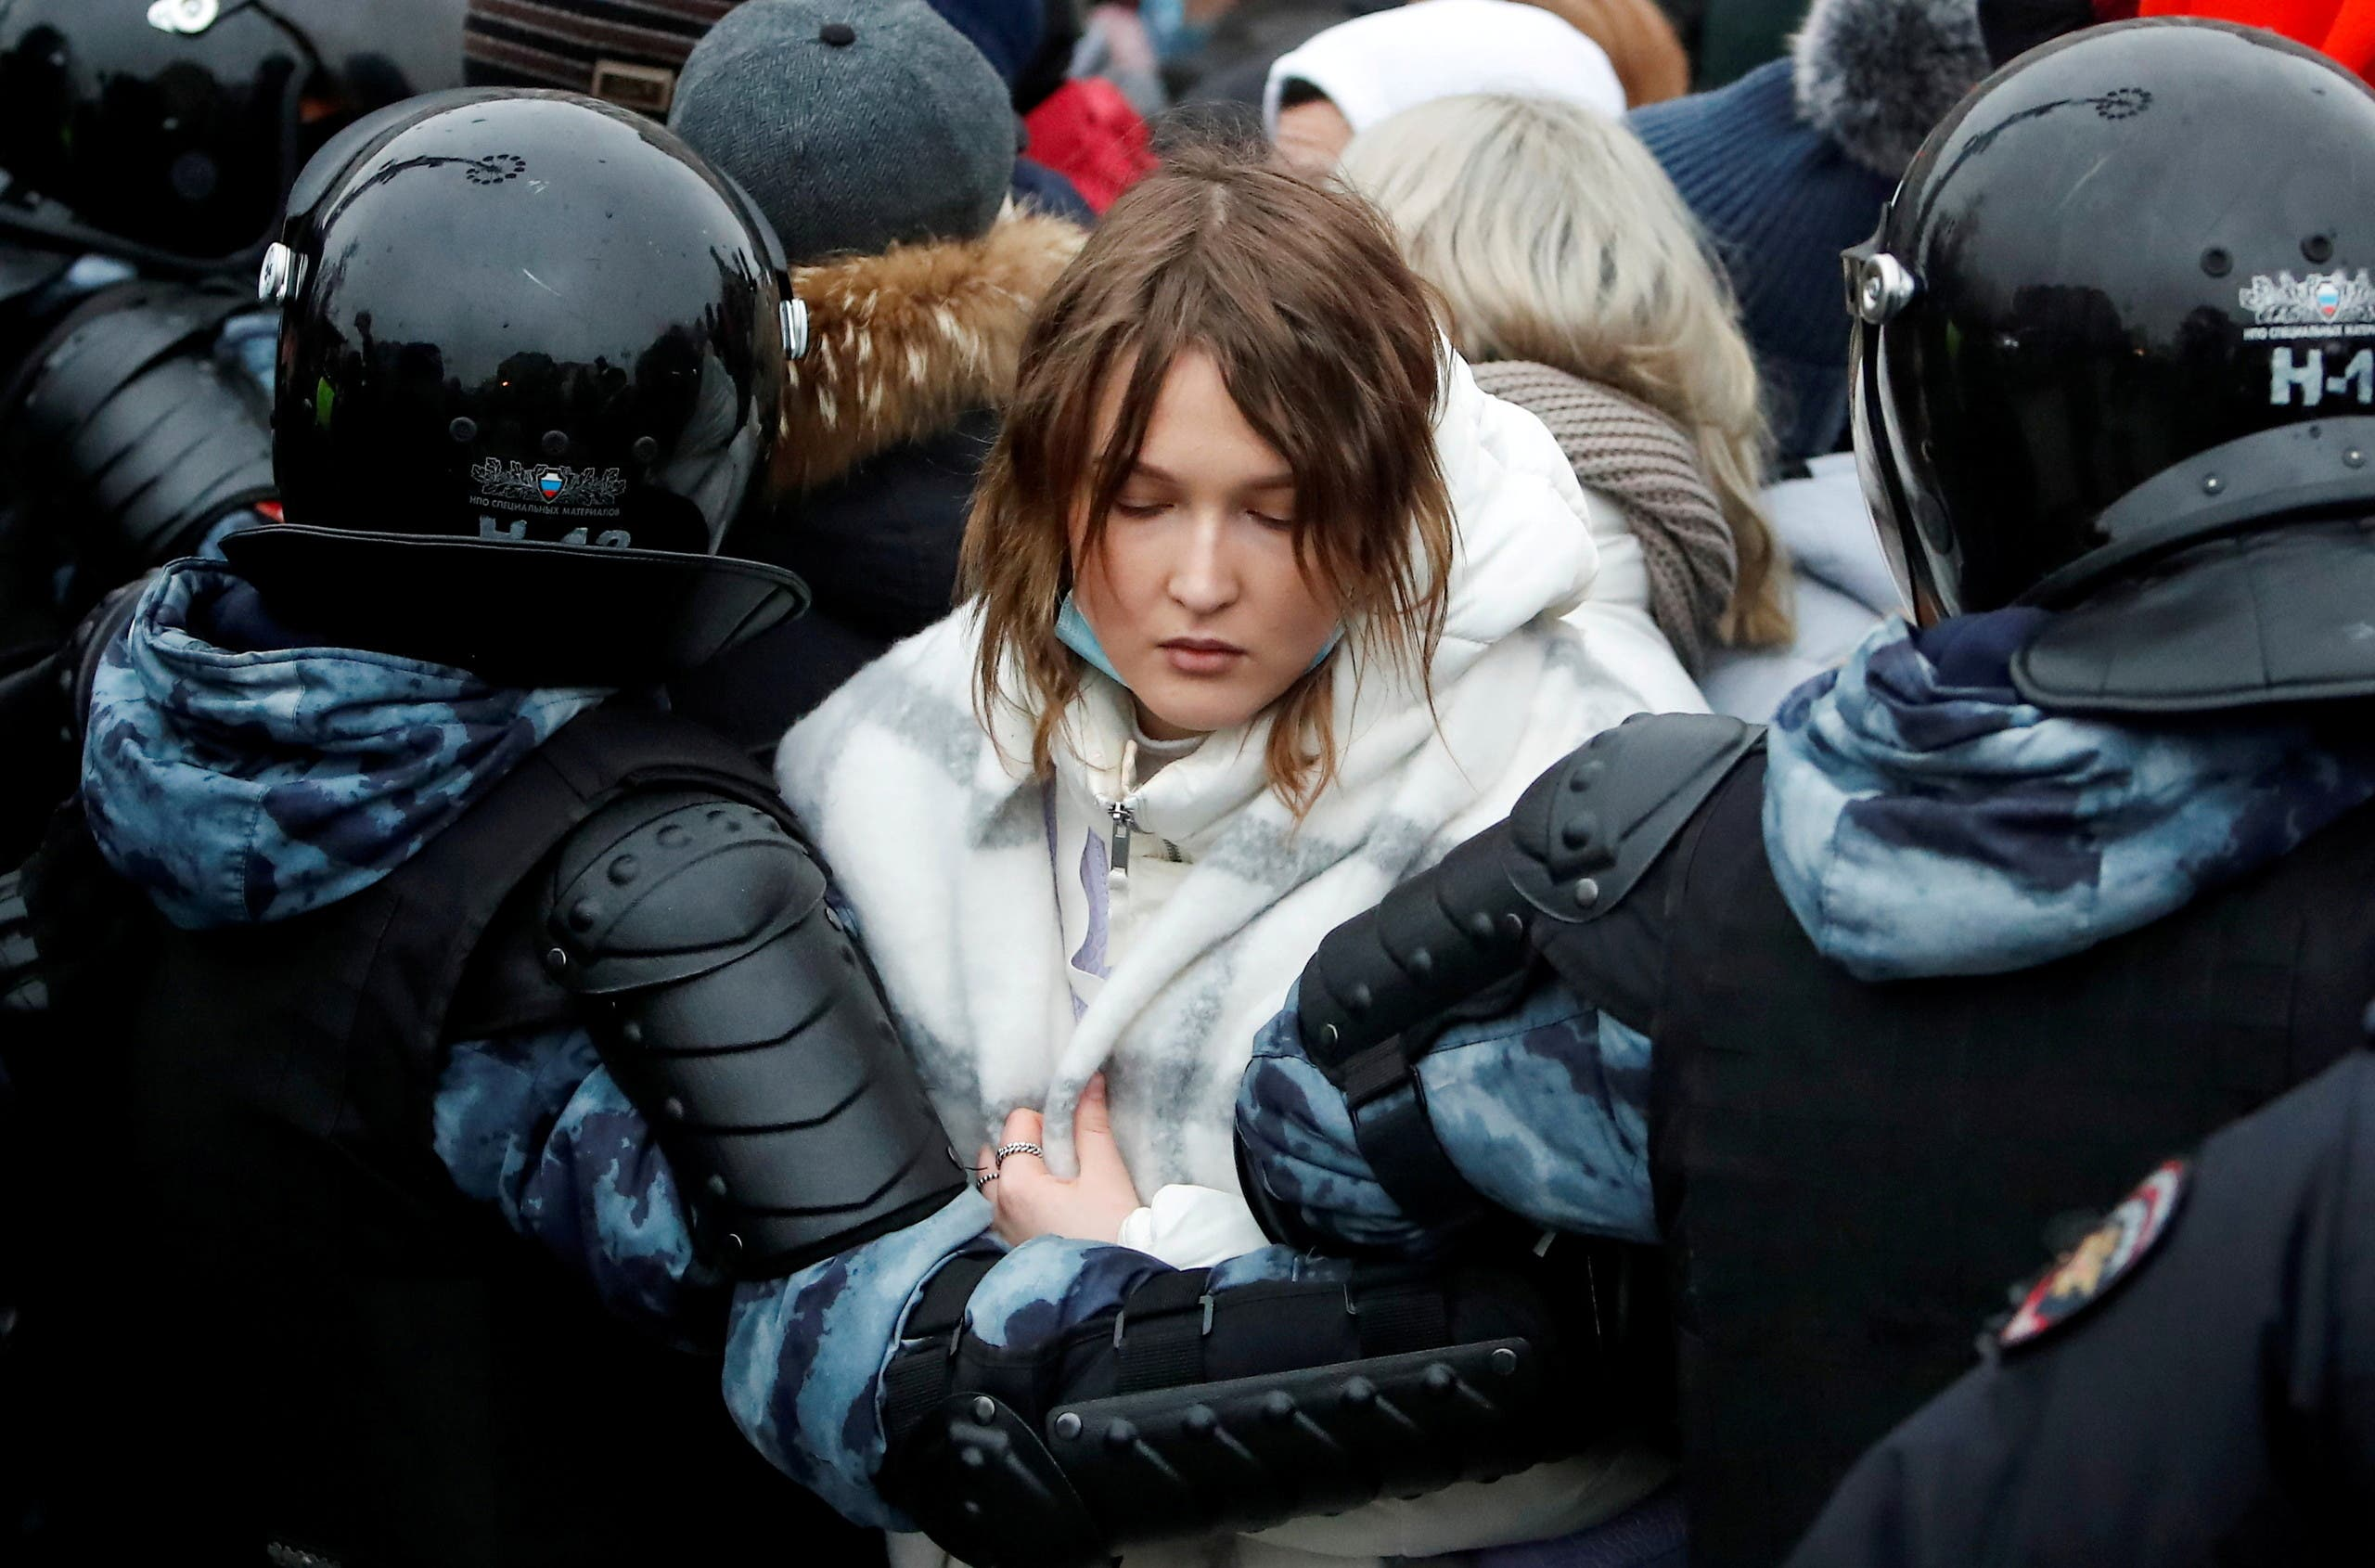 Law enforcement officers detain a woman during a rally in support of jailed Russian opposition leader Alexei Navalny in Moscow, Russia January 23, 2021. (Reuters)